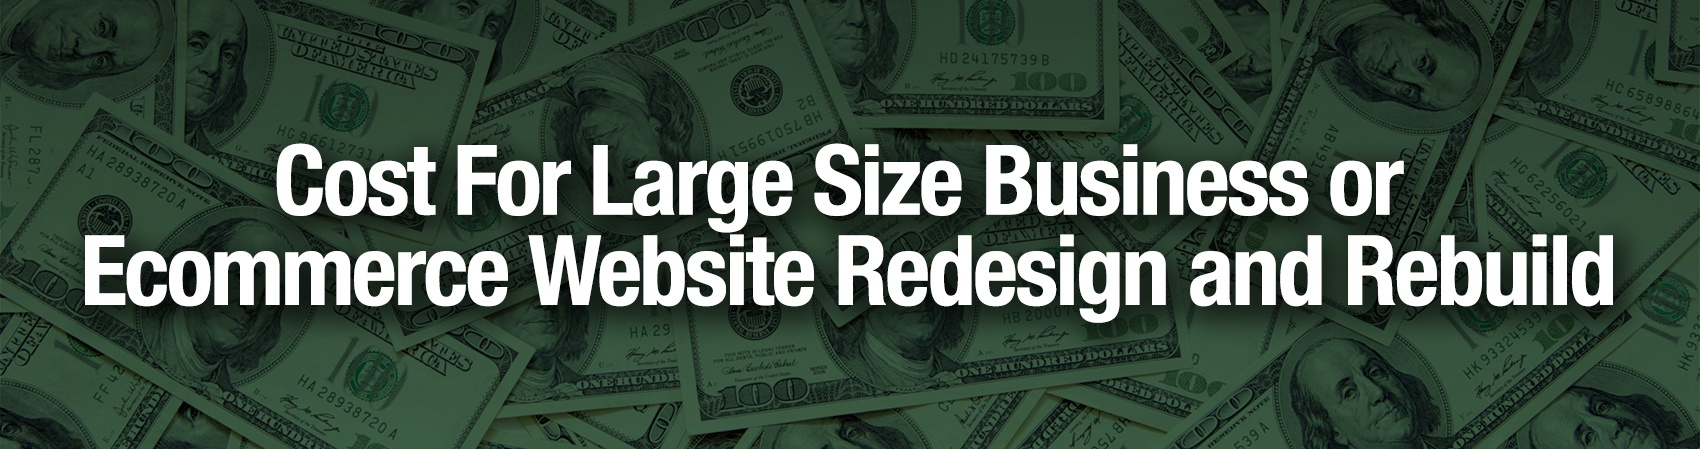 Cost-For-Large-Size-Business-or-Shopping-Website-Redesign-and-Rebuild.jpg